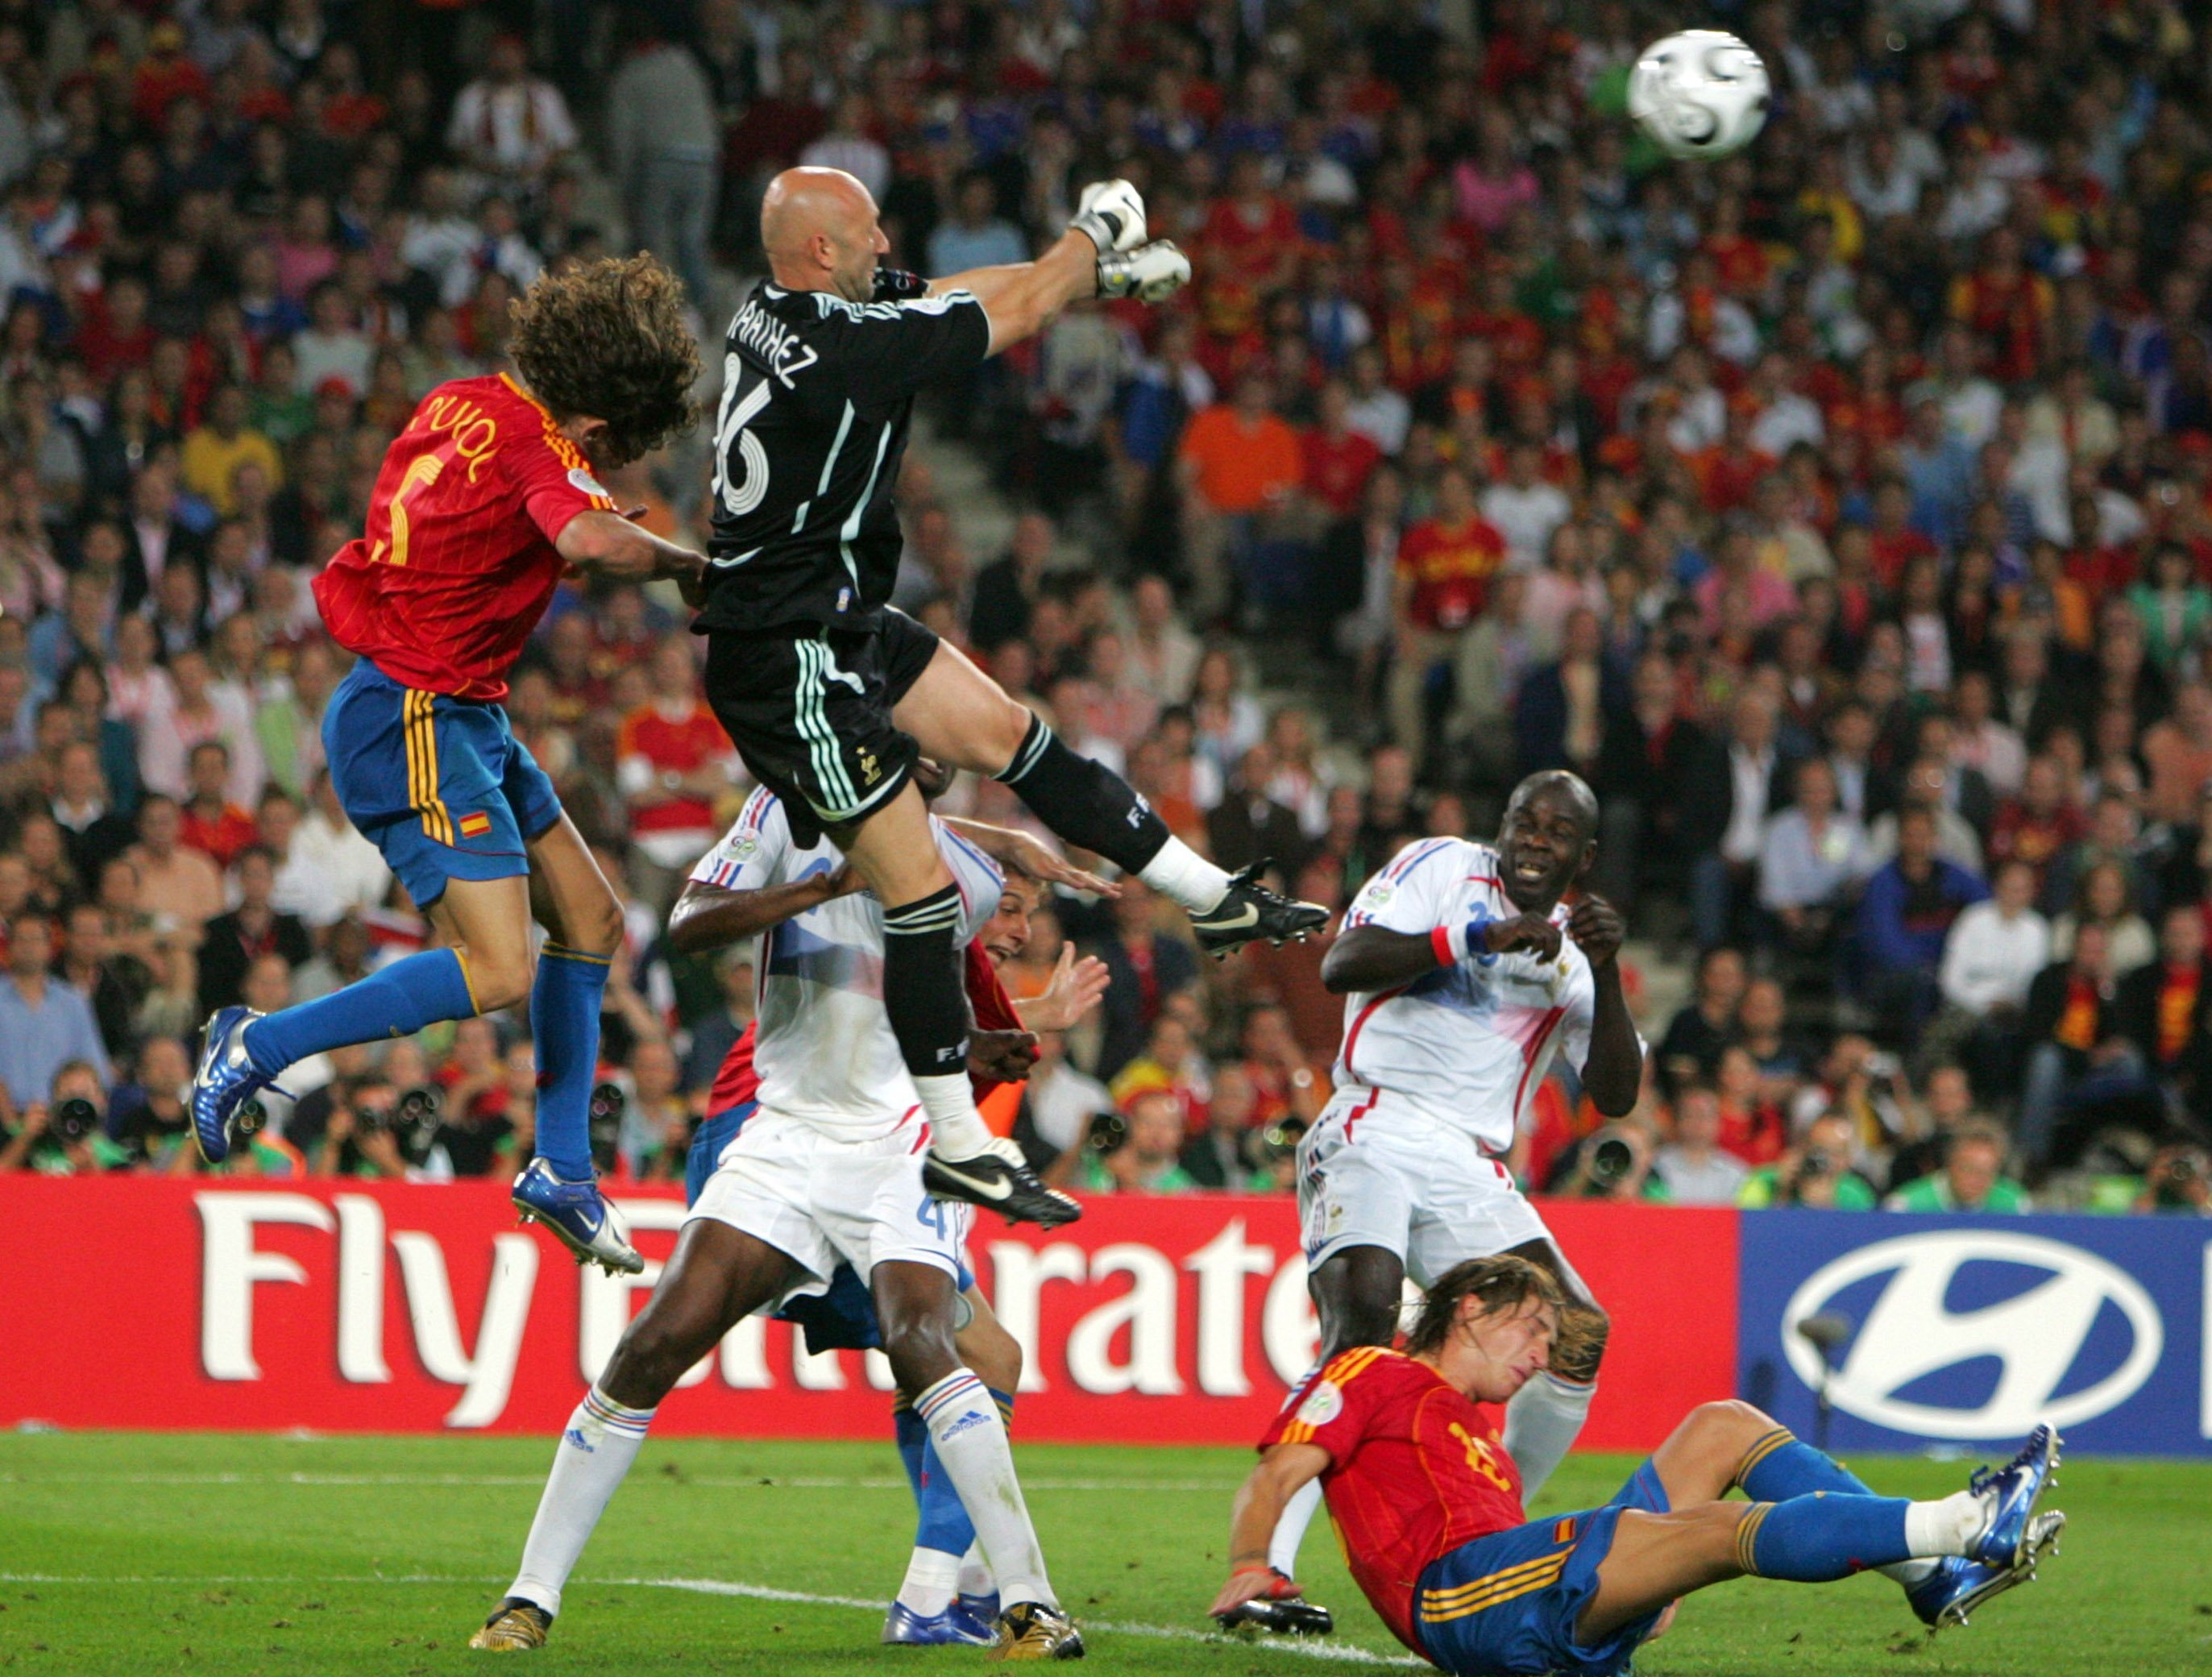 Les confrontations france espagne en images euro 2012 football - Hymne coupe du monde 2006 ...